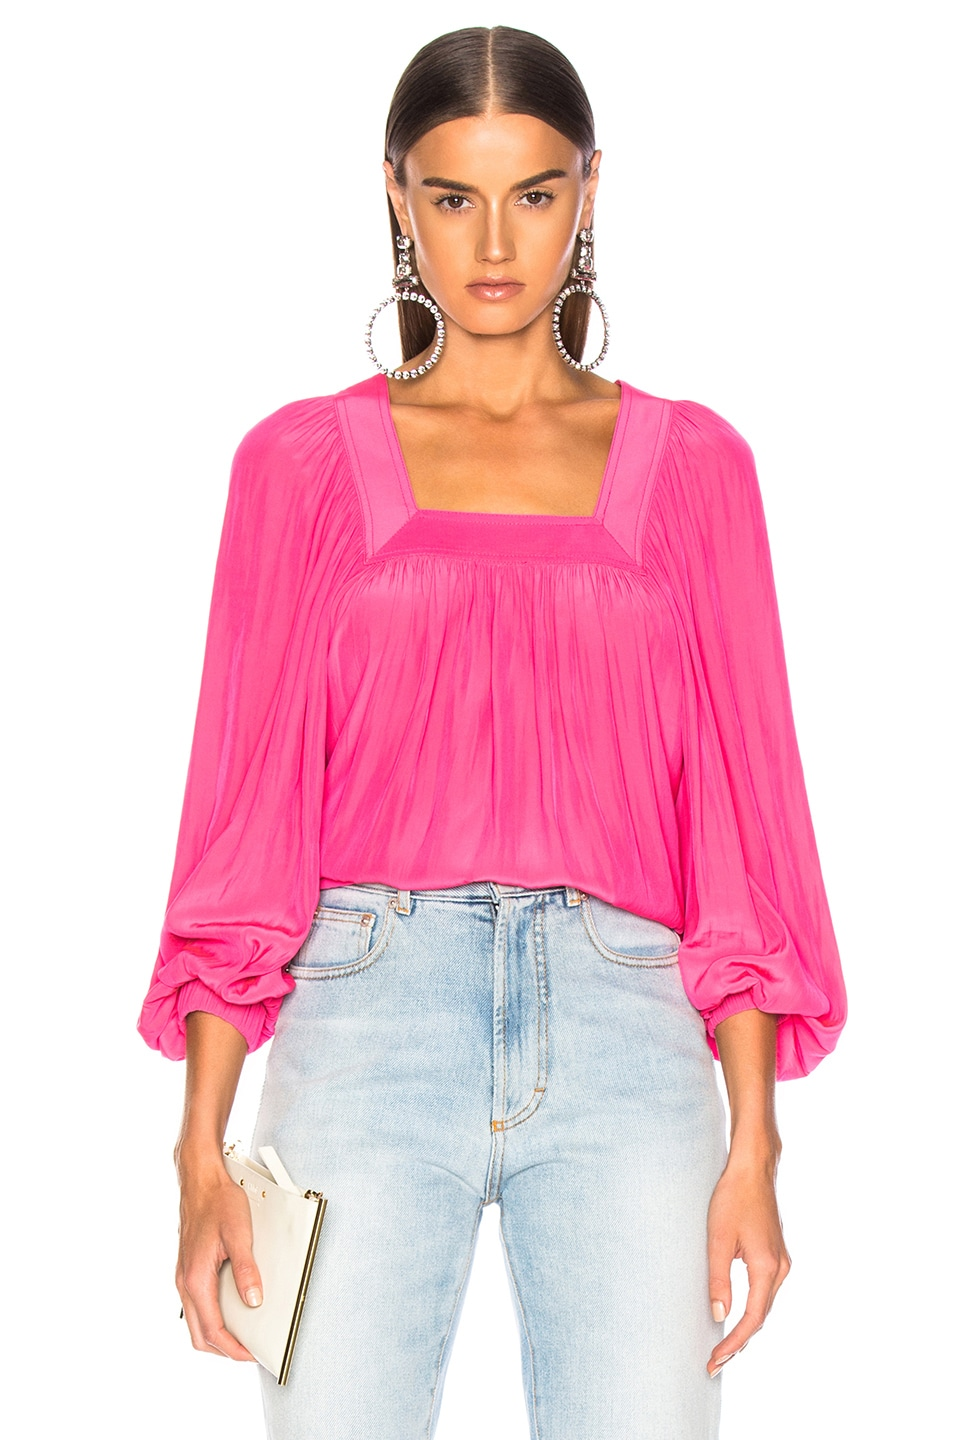 dd82ede2e9b4b Image 1 of Smythe Square Neck Top in Neon Pink